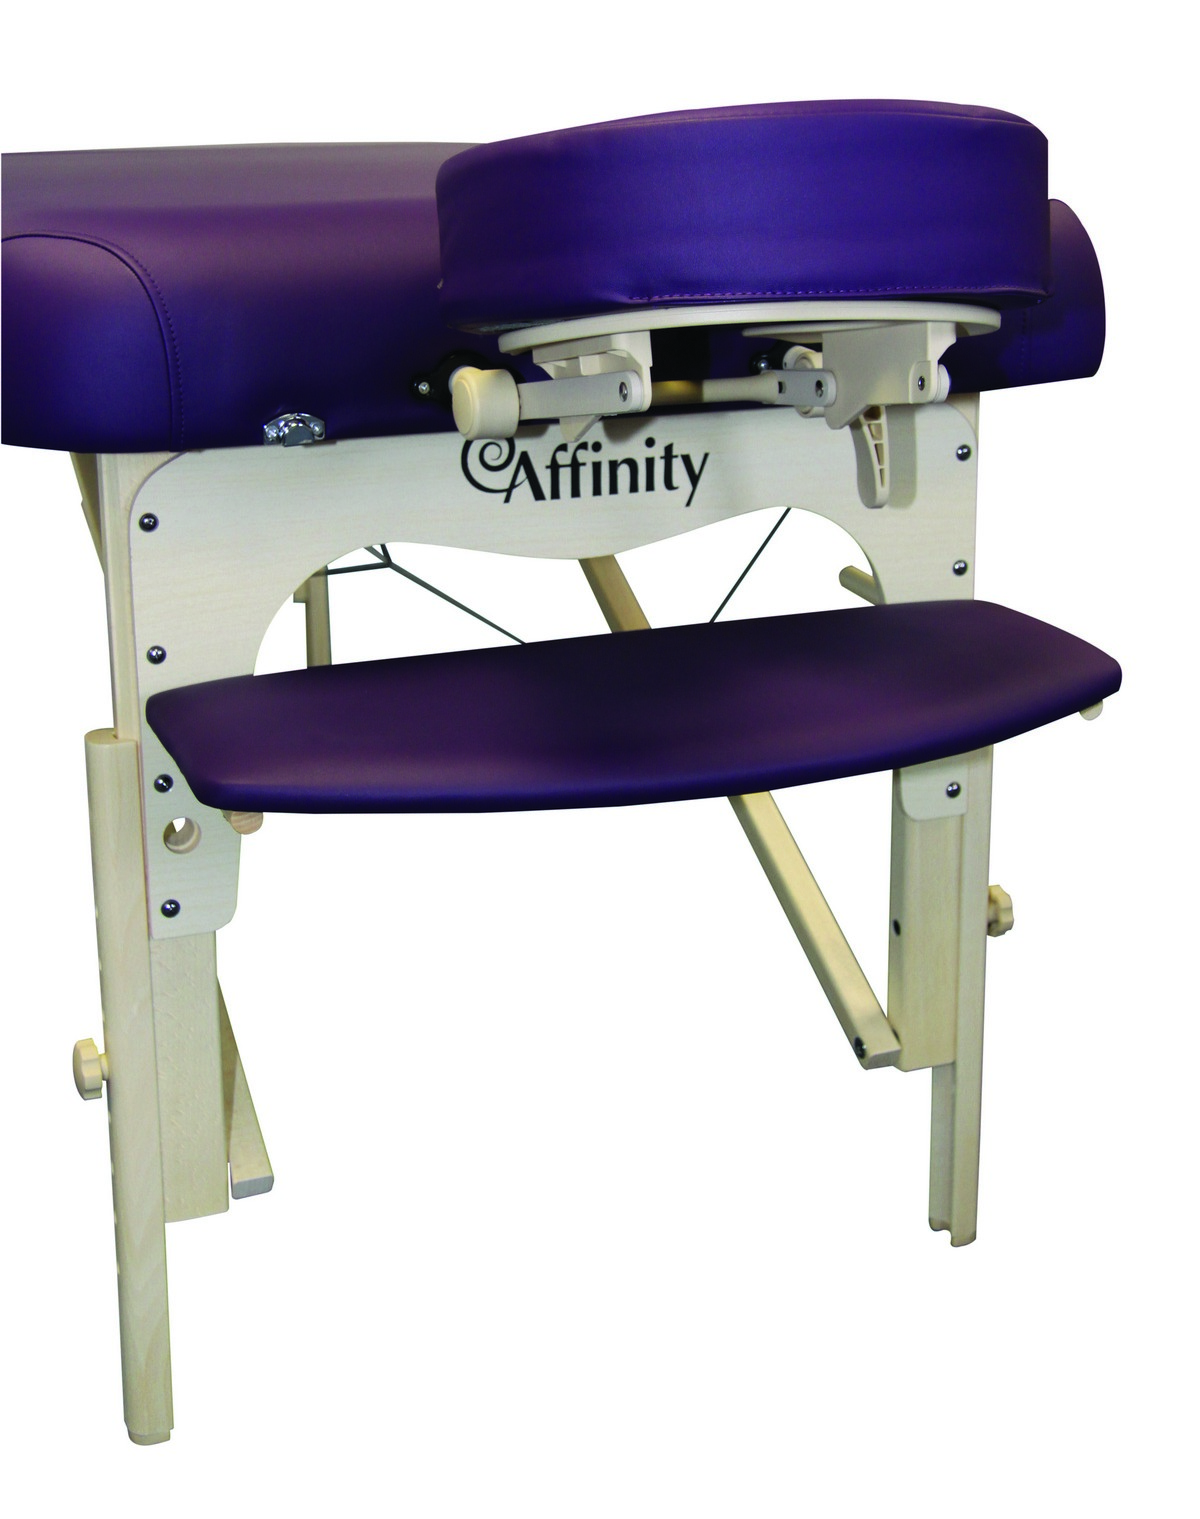 Affinity deluxe portable massage tables uk for Massage table